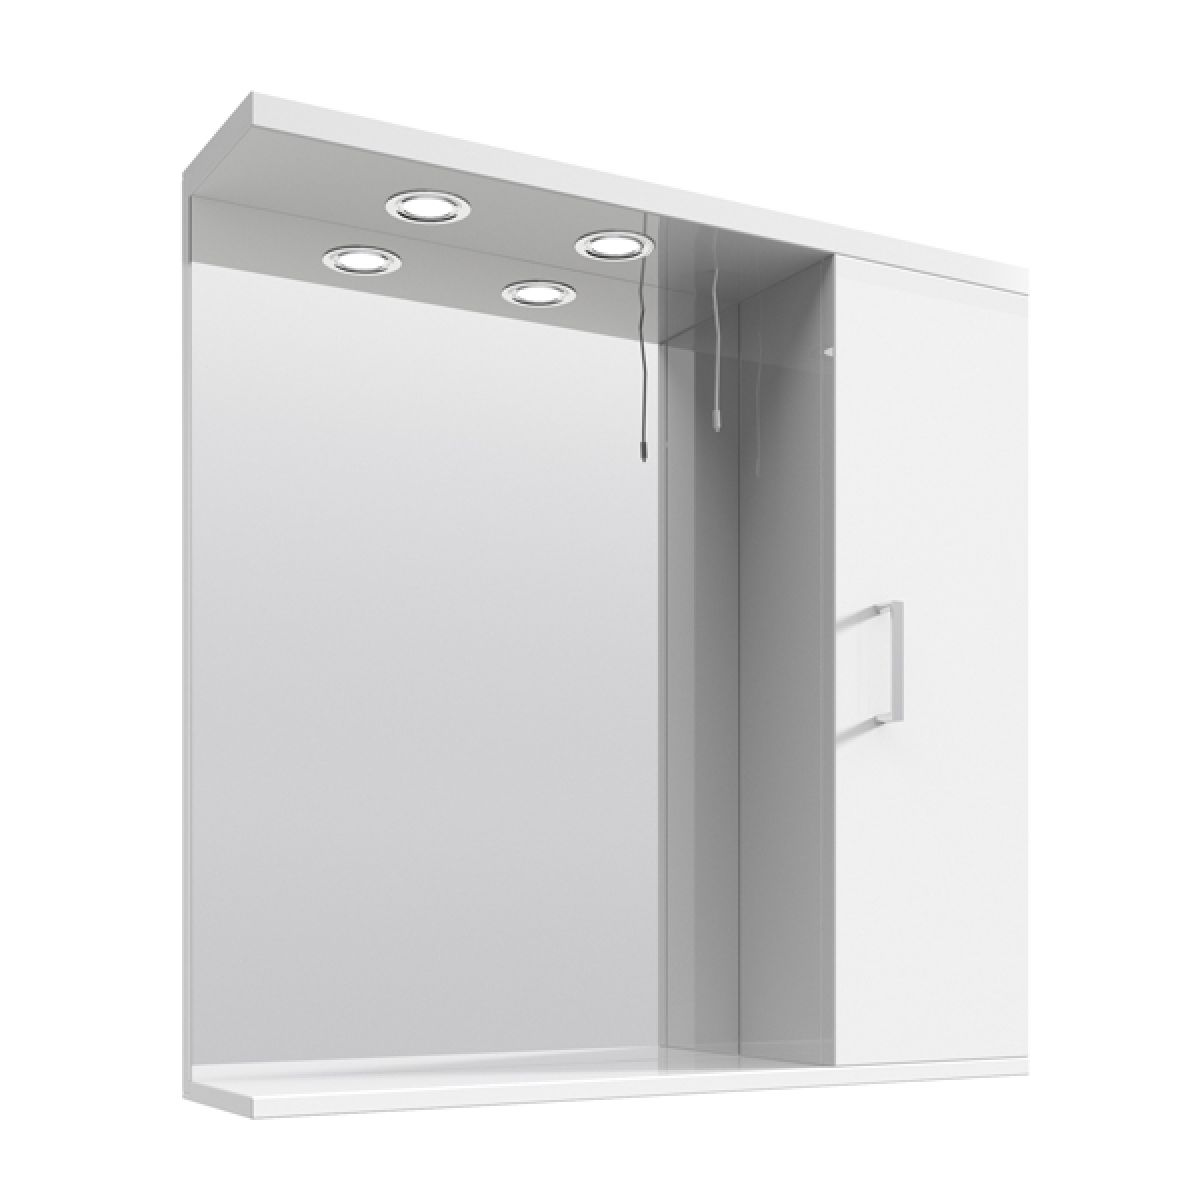 Premier High Gloss White Bathroom Mirror Cabinet with Lights 750mm